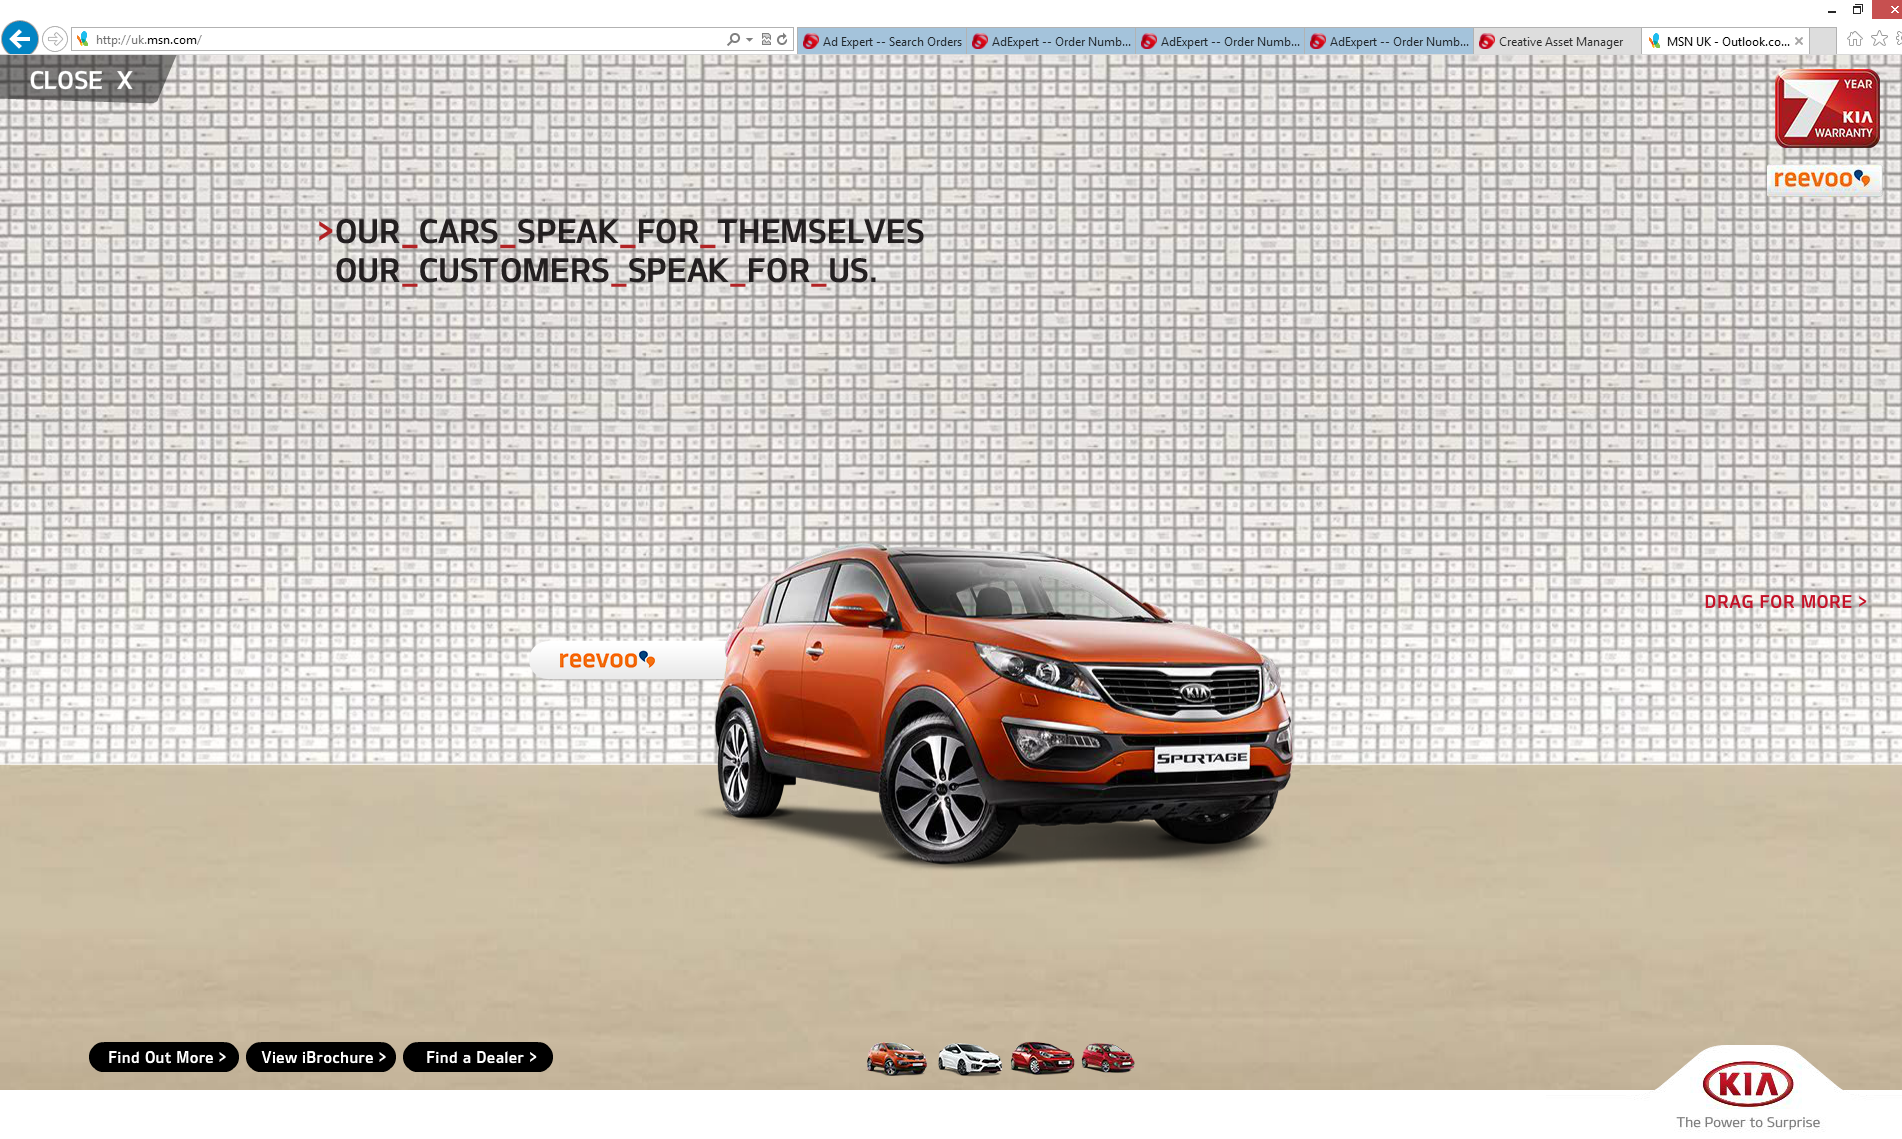 kia partners with microsoft advertising to launch msn storyboard campaign